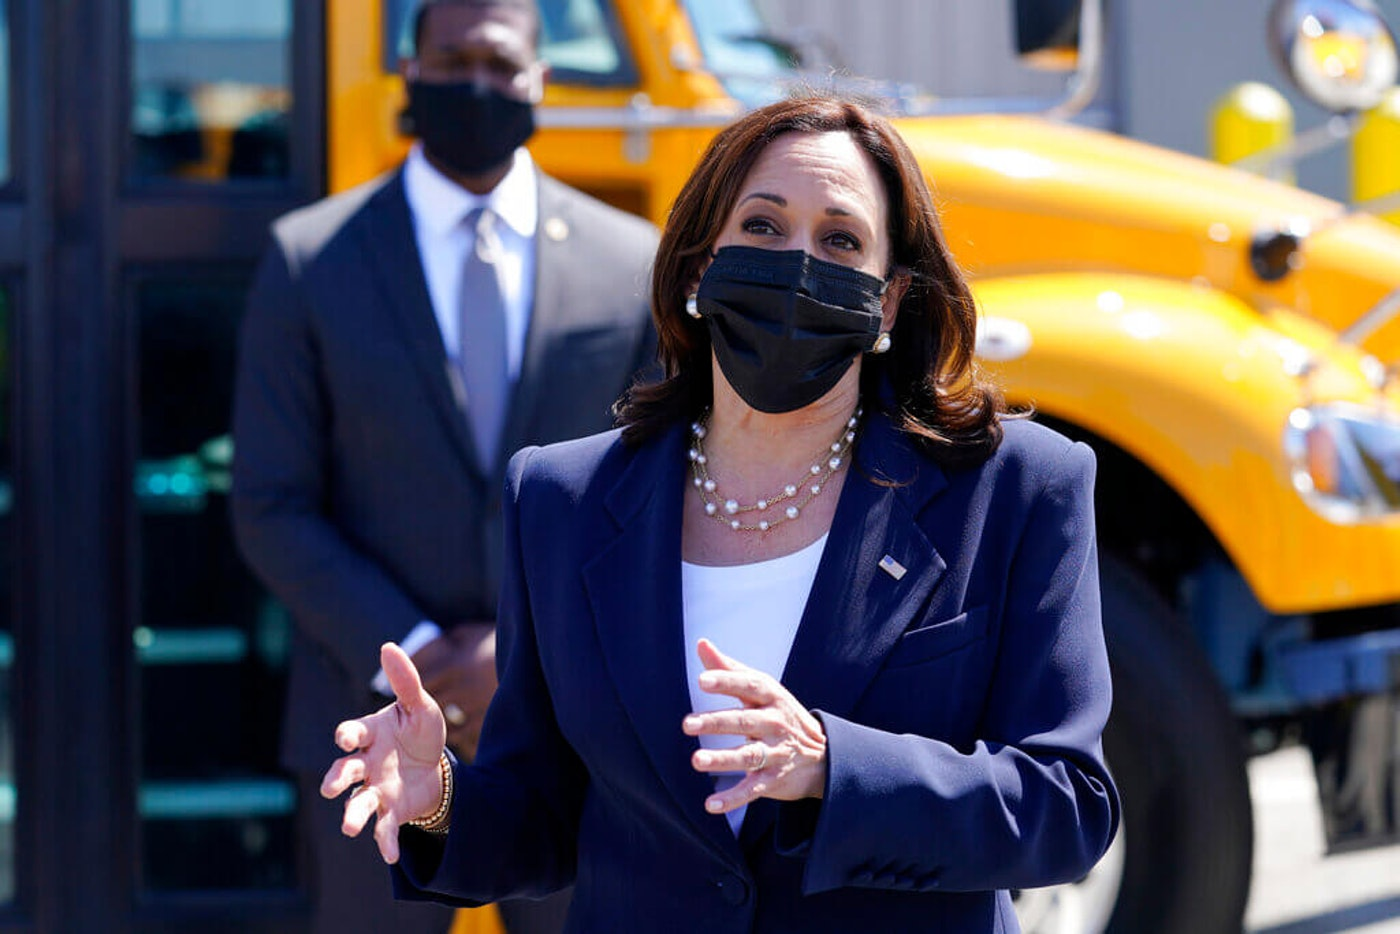 Vice President Kamala Harris talks to media at the conclusion of a tour at Thomas Built Buses Monday in High Point, N.C. (AP Photo/Carolyn Kaster)